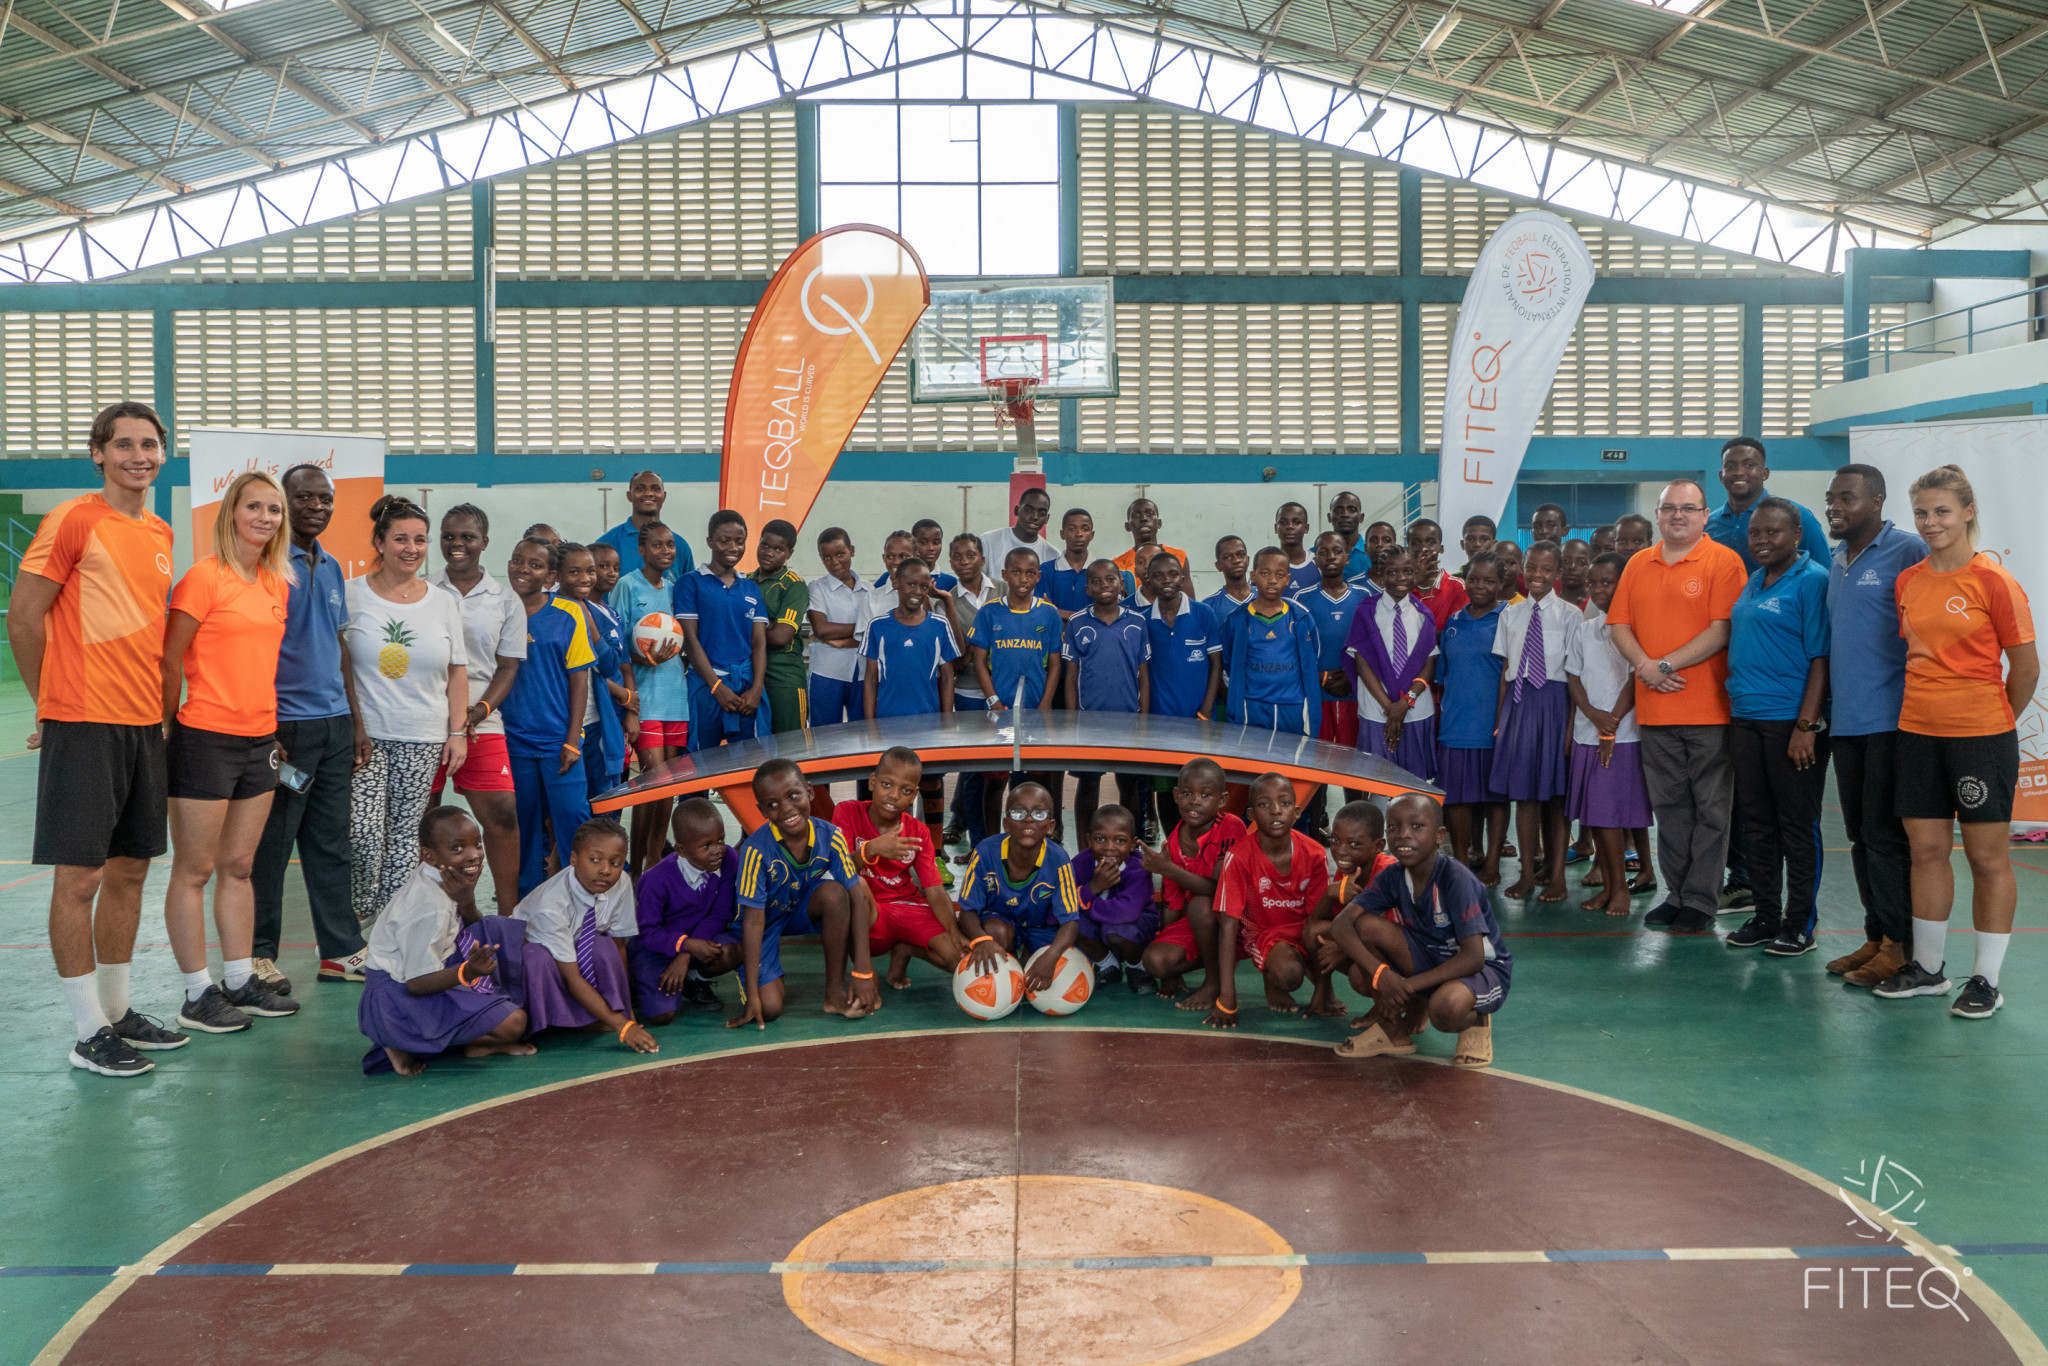 FITEQ is working in partnership with Olympafrica and donated tables in Tanzania ©FITEQ